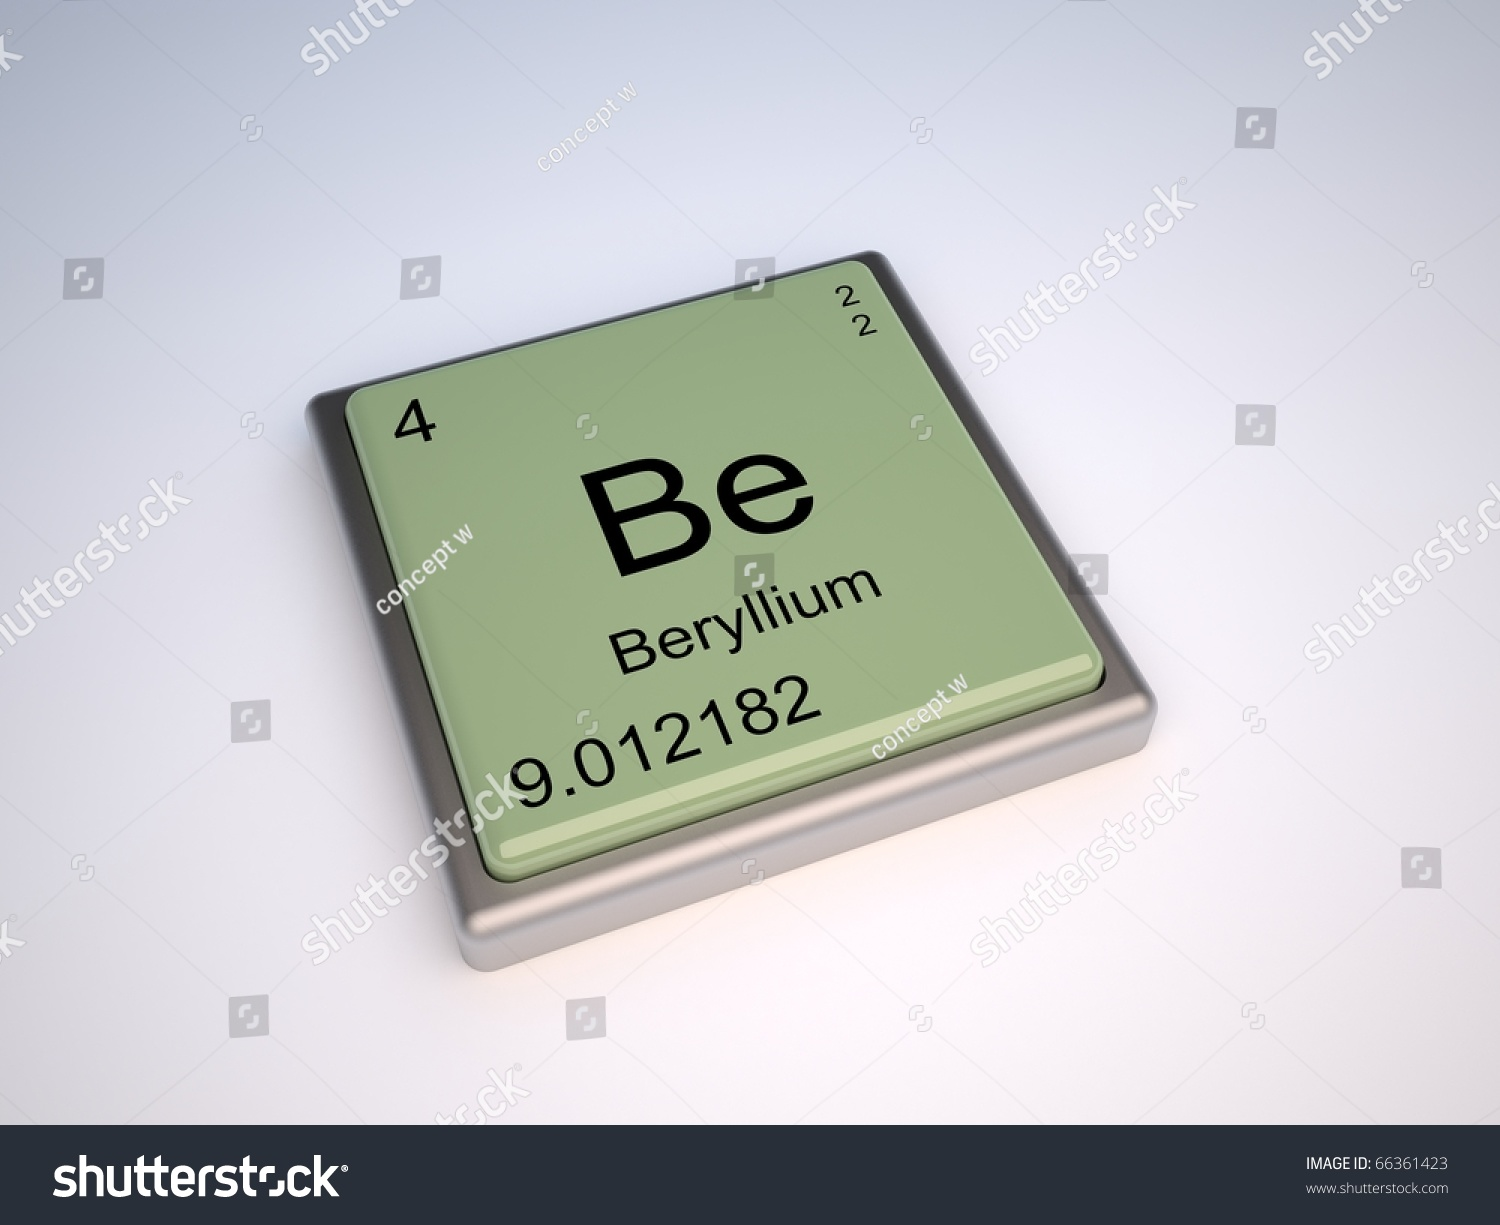 Beryllium chemical element periodic table symbol stock beryllium chemical element of periodic table with symbol be buycottarizona Image collections